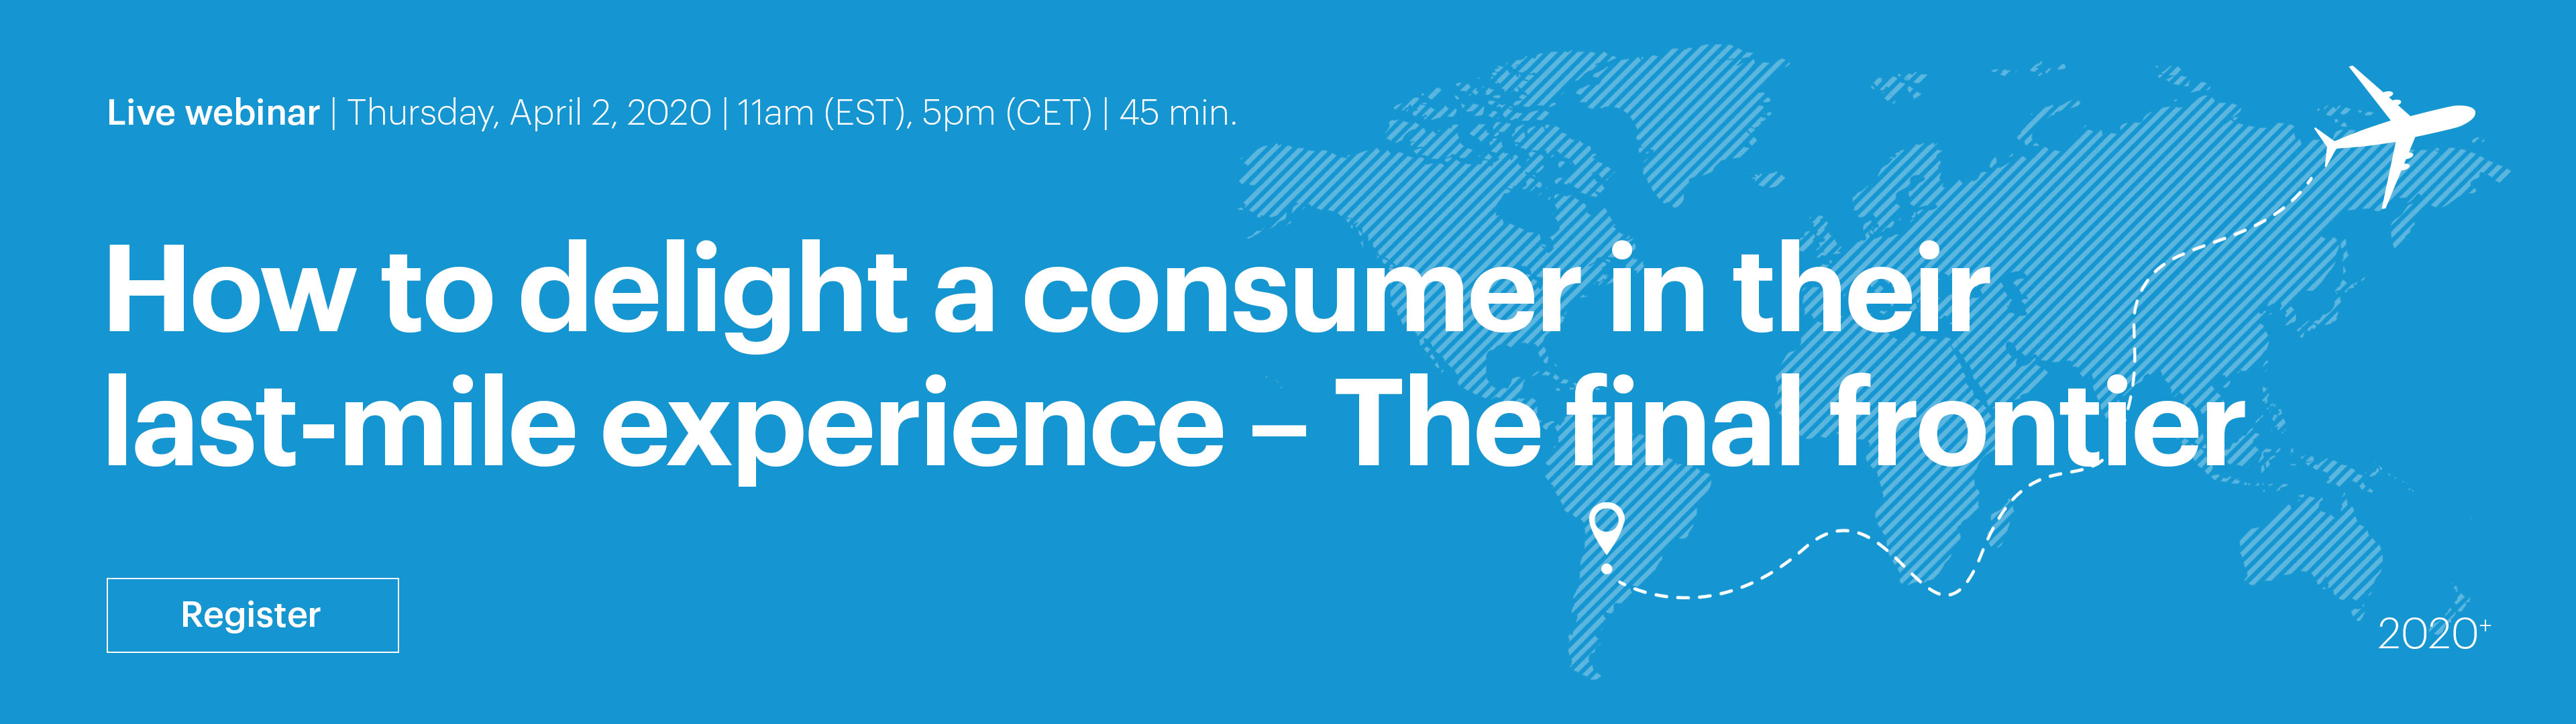 Live Webinar: How to delight a consumer in their last-mile experience?